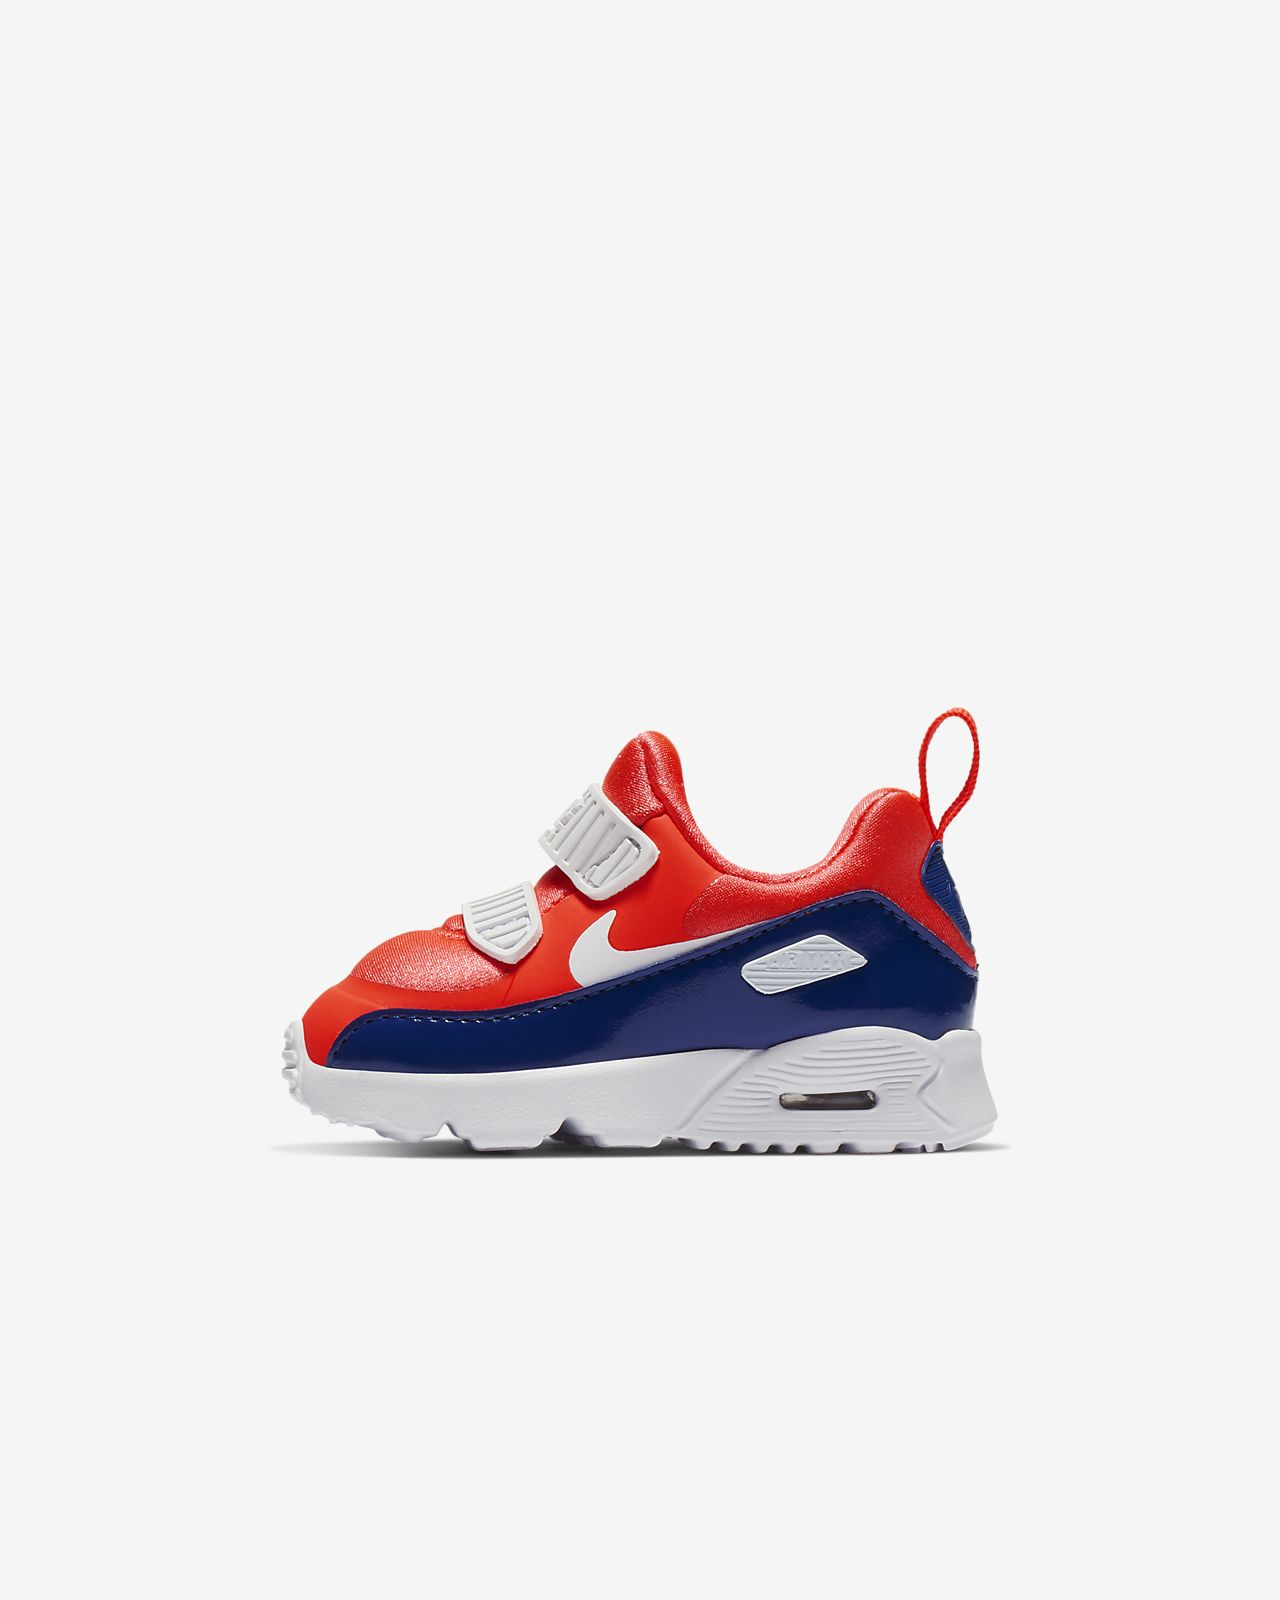 size 40 18b47 fa2c4 Baby and Toddler Shoe. Nike Air Max Tiny 90